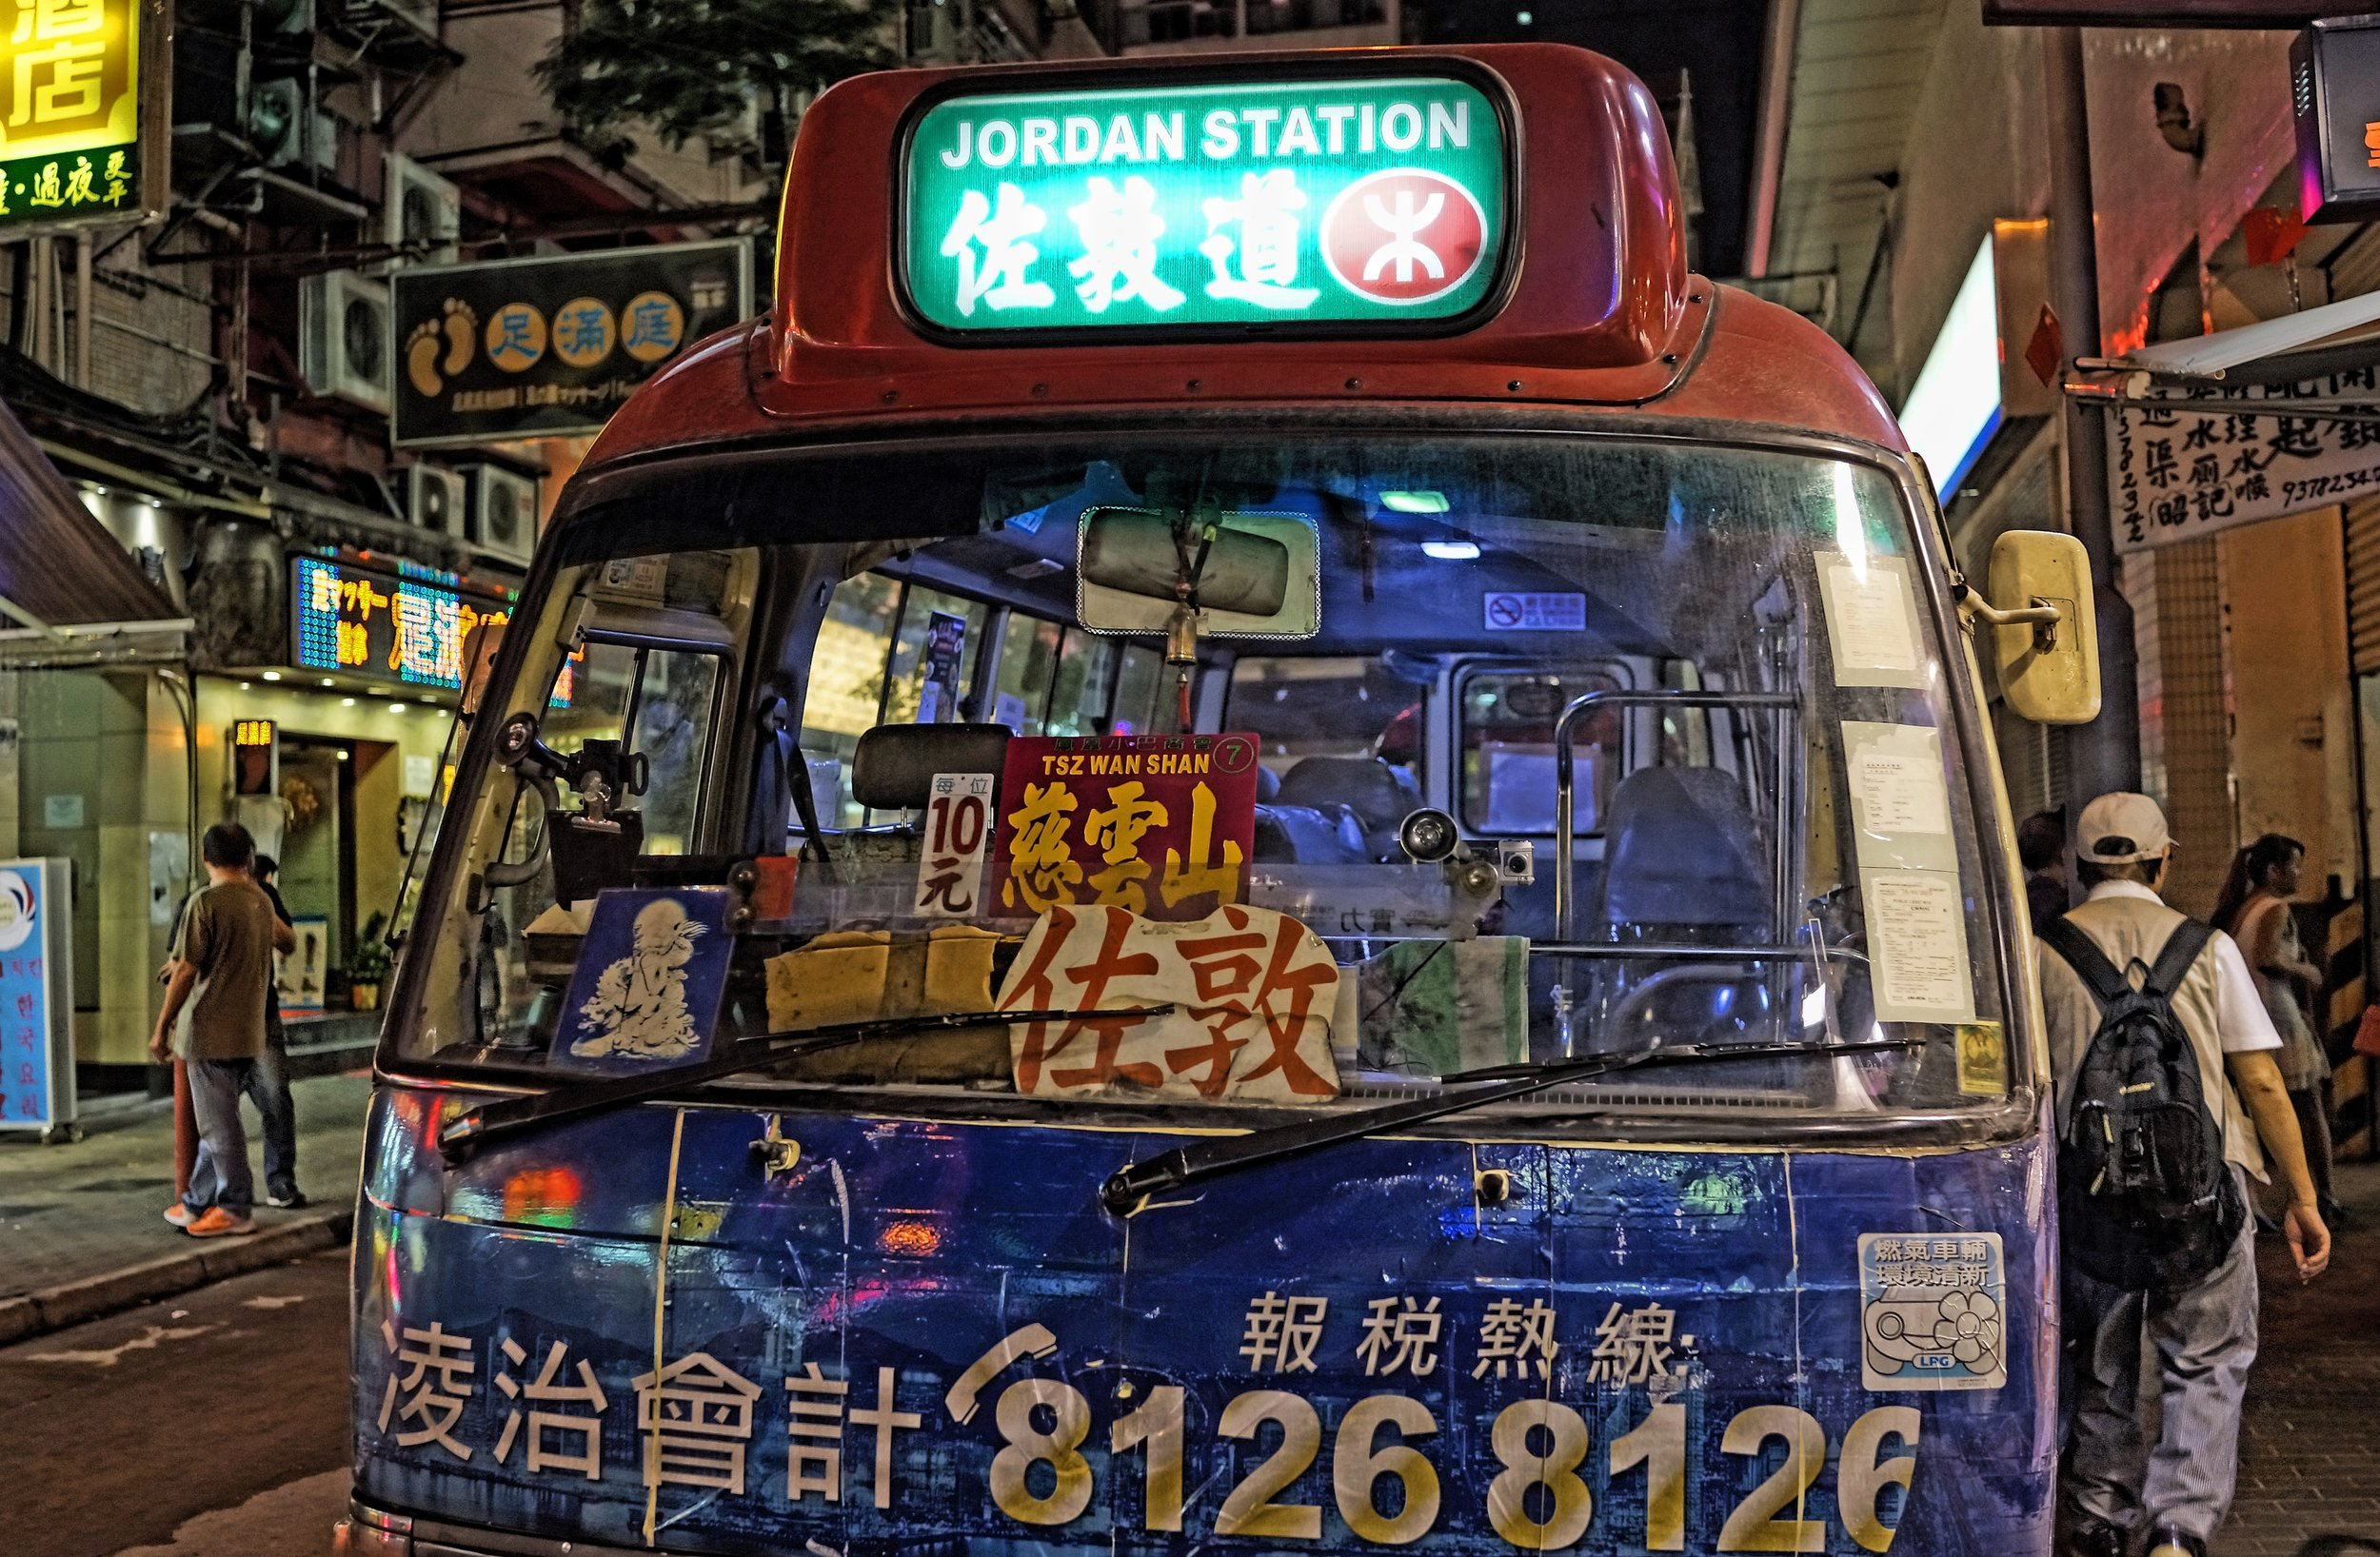 …and nothing beats travelling on a Hong Kong red top mini bus to get orientated with Hong Kong's Public Transport system! -